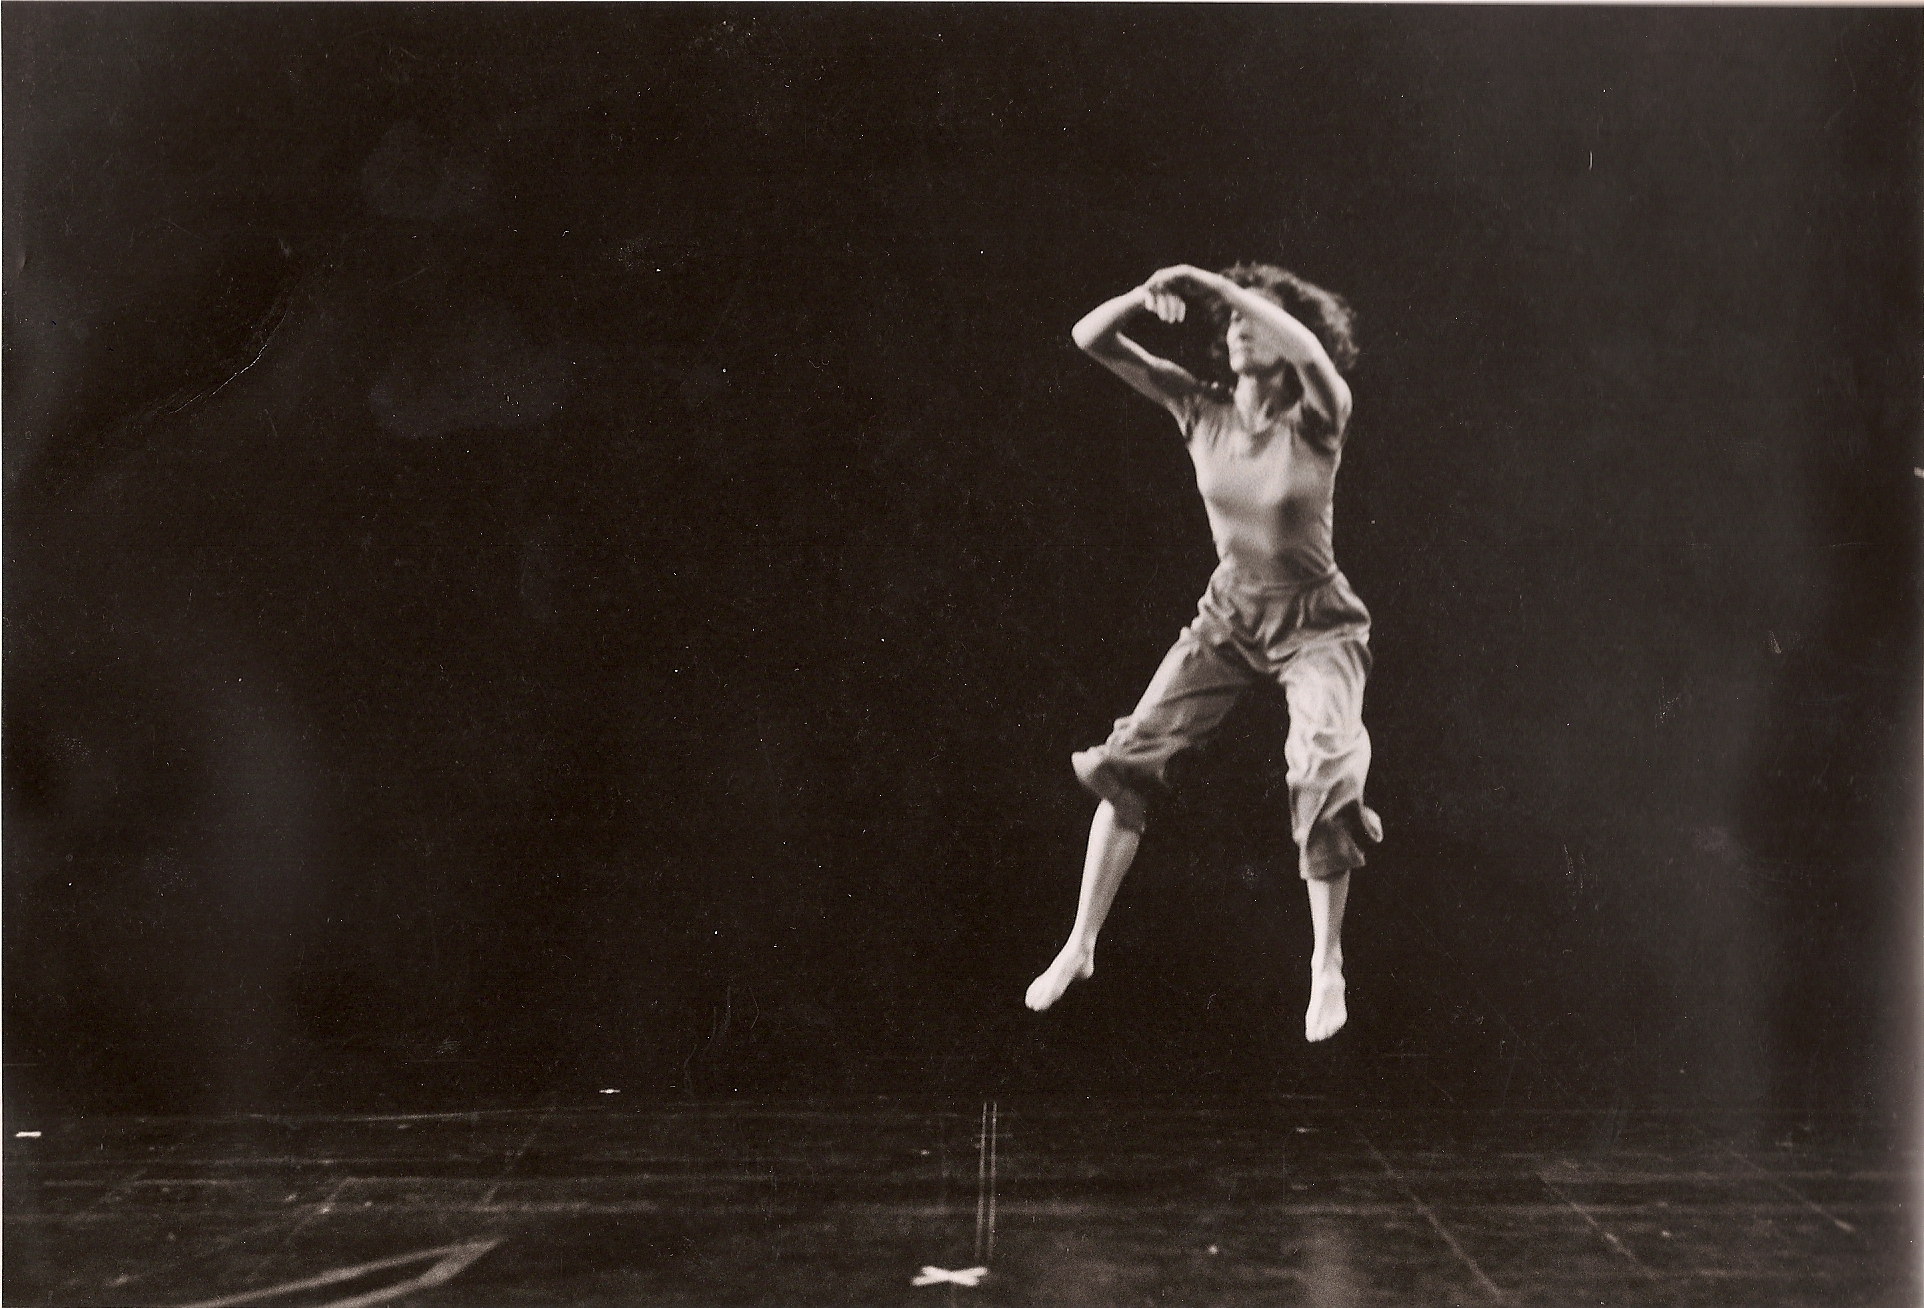 judson dance theater essay The church was already known for the judson poets' theater and judson art she ended the essay with what became step-by-step guide to dance: yvonne rainer.